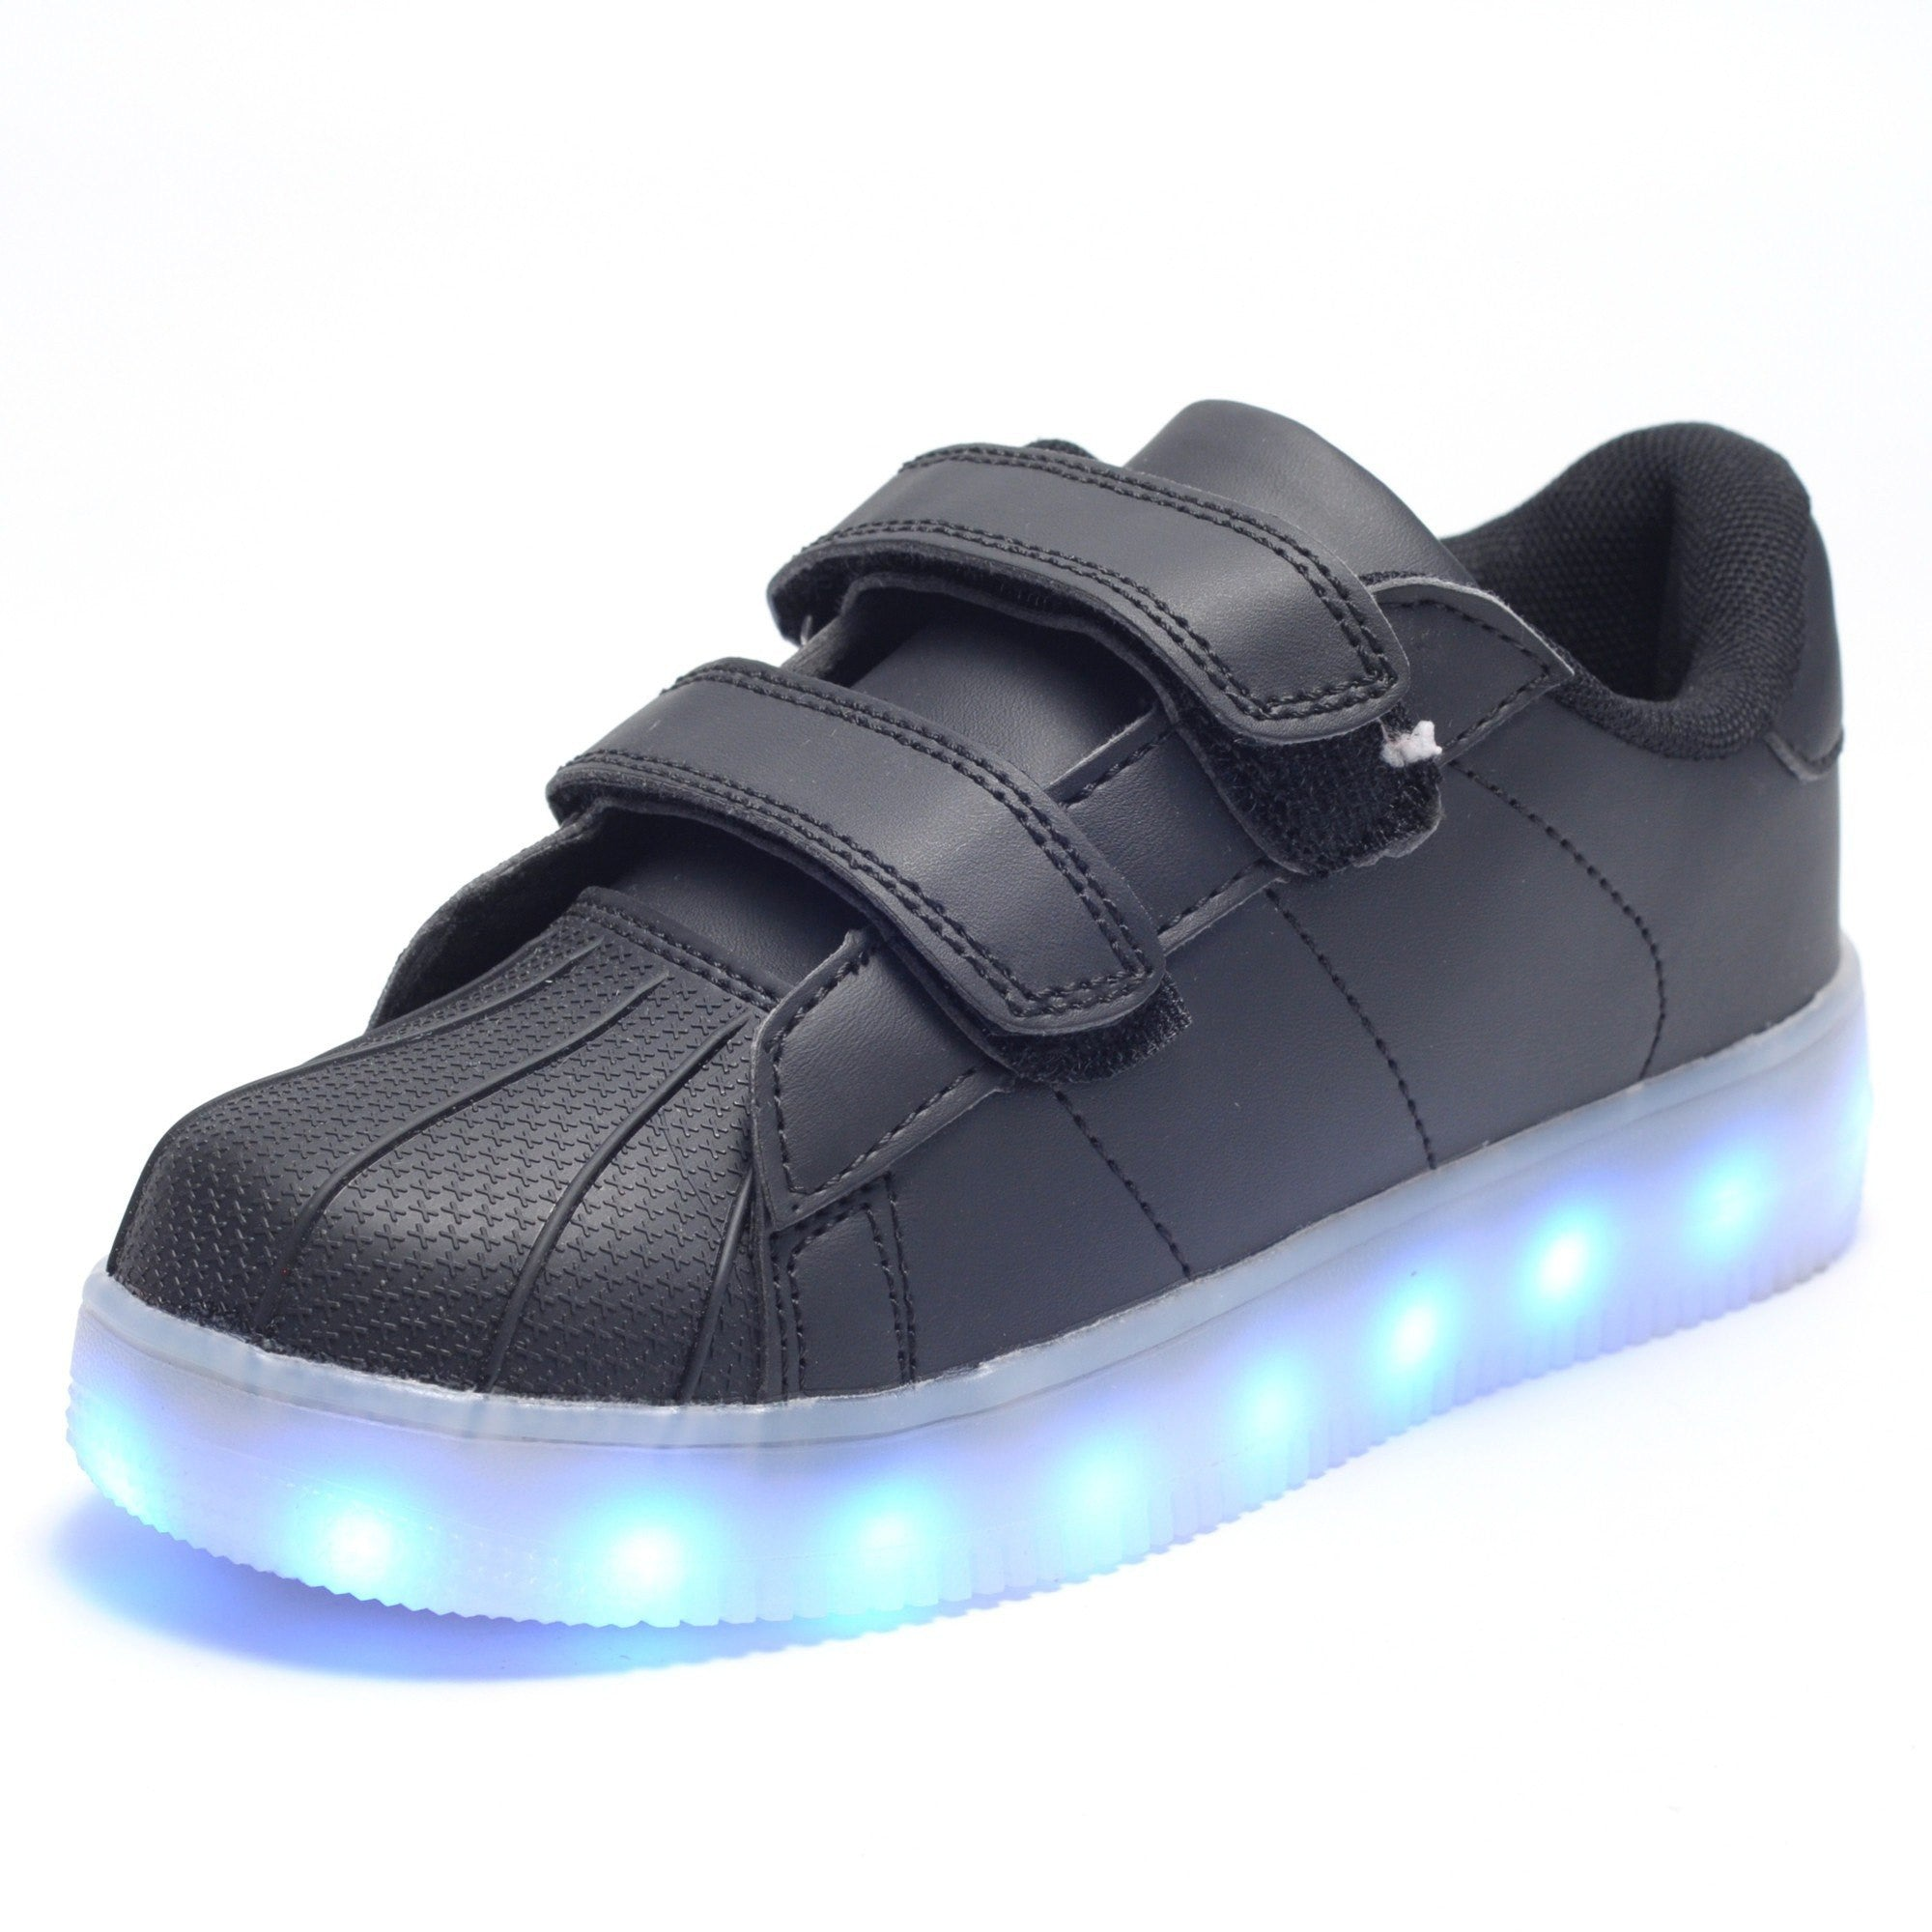 Kids Black Velcro LED Light Up Shoes - Rave Rebel